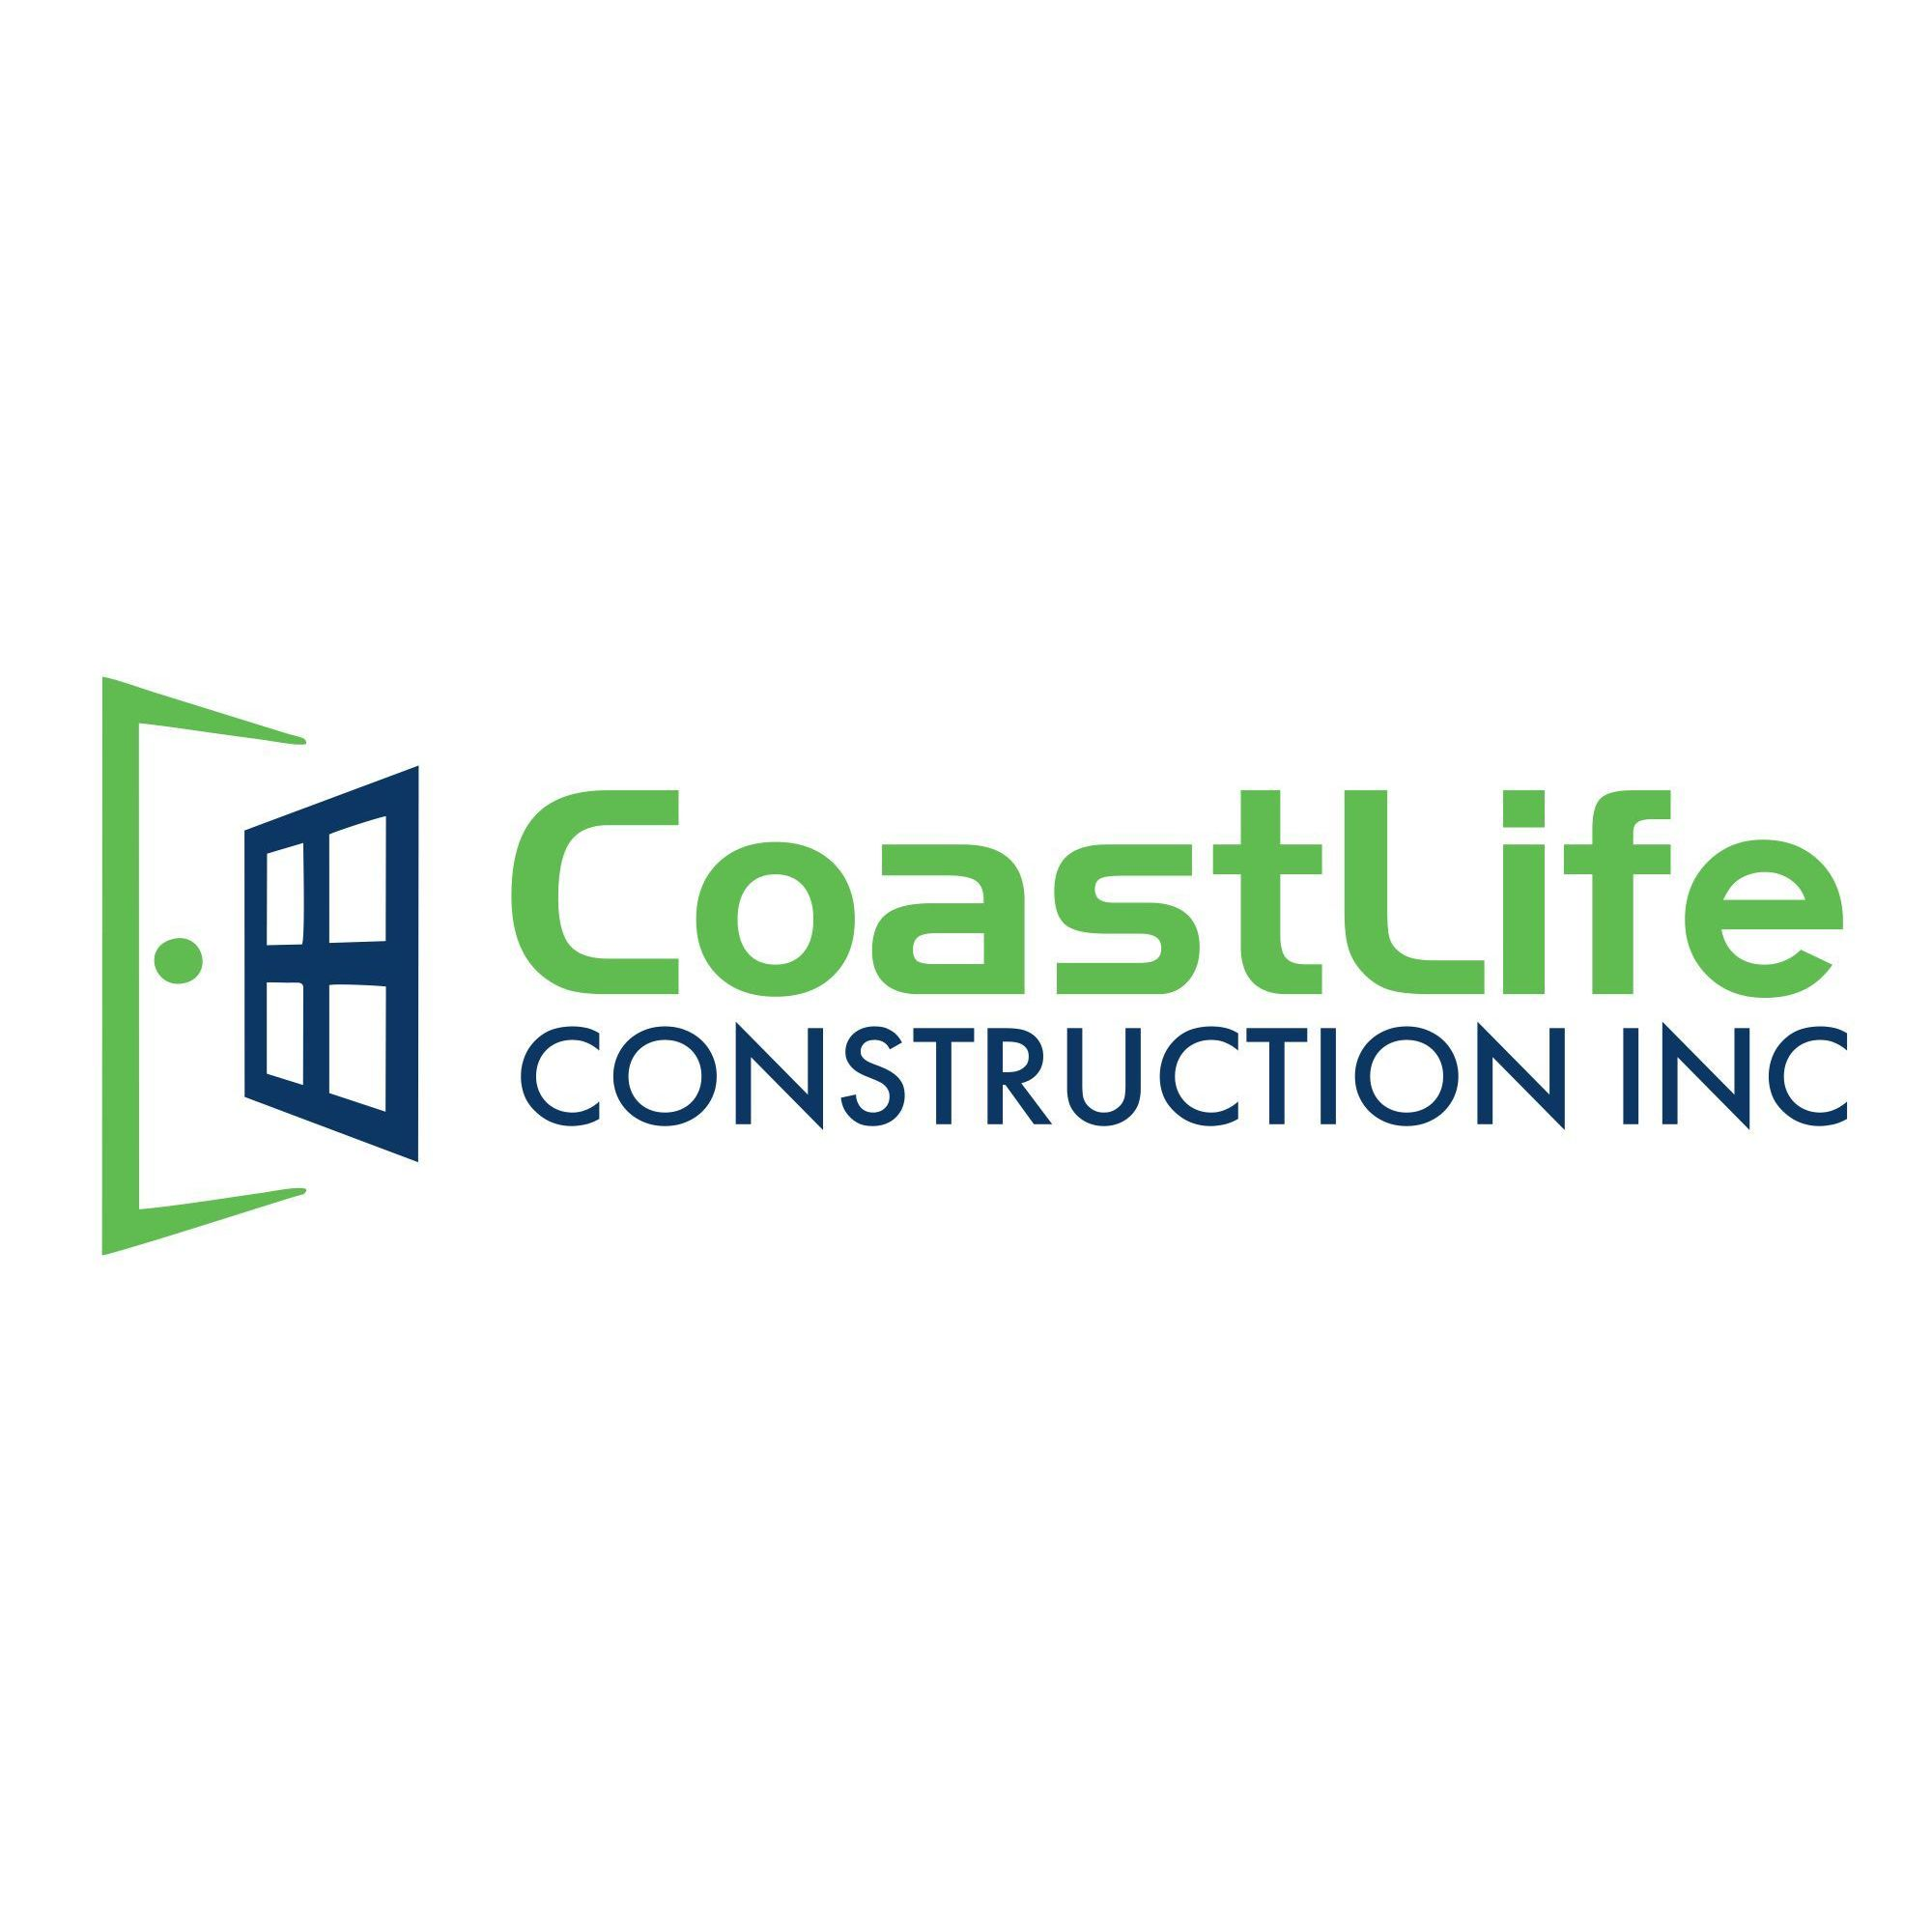 Coastlife Construction Inc.